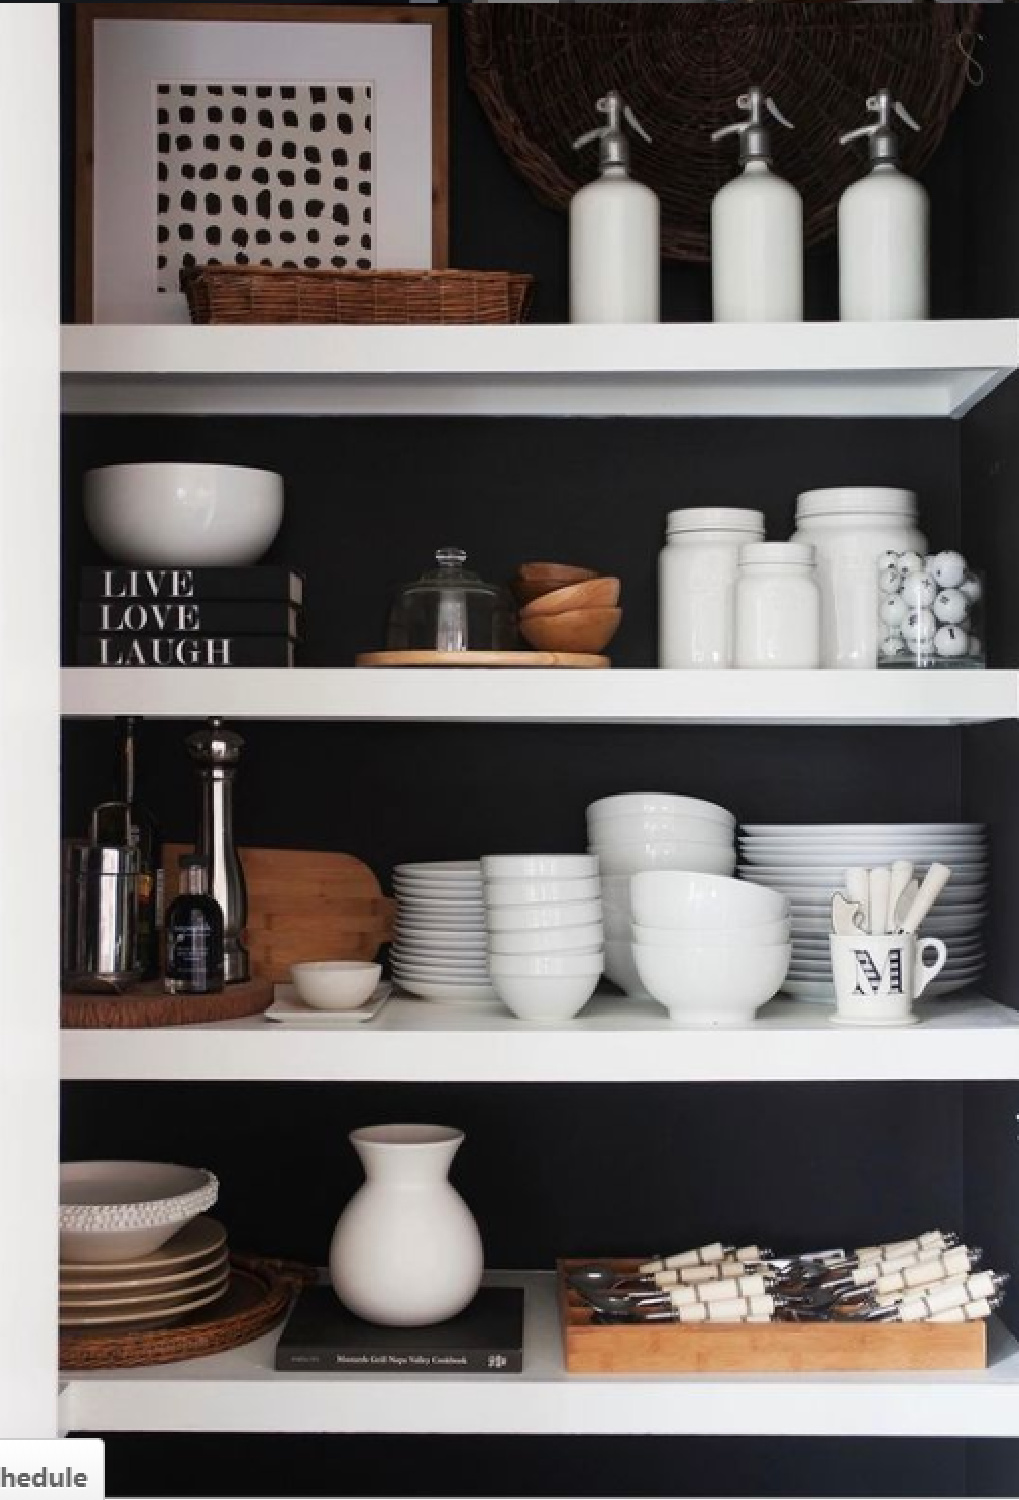 White pantry shelves contrast with black painted wall for a dramatic effect in a kitchen - design by Sherry Hart. #blackandwhite #pantry #blackwalls #interiordesign